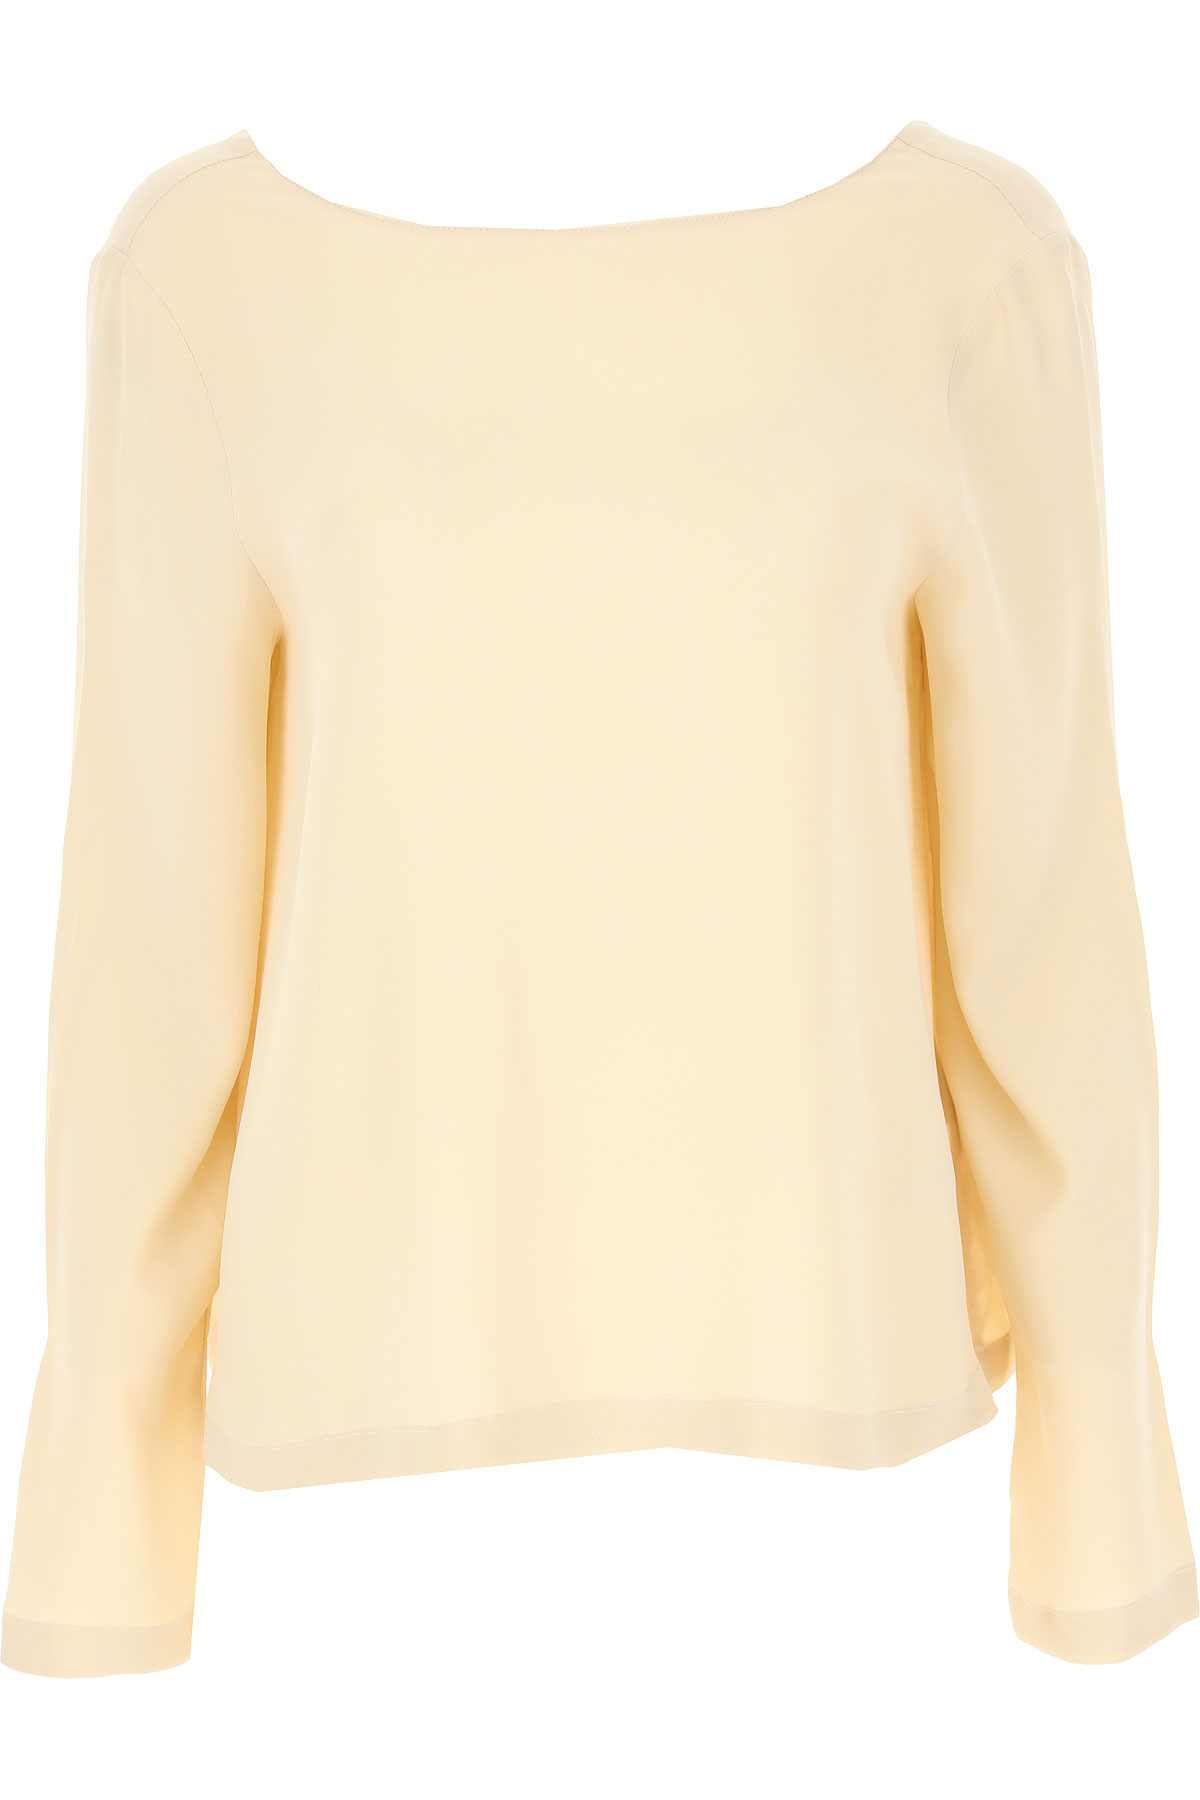 Semicouture Top for Women On Sale, Ivory, acetate, 2019, 4 8